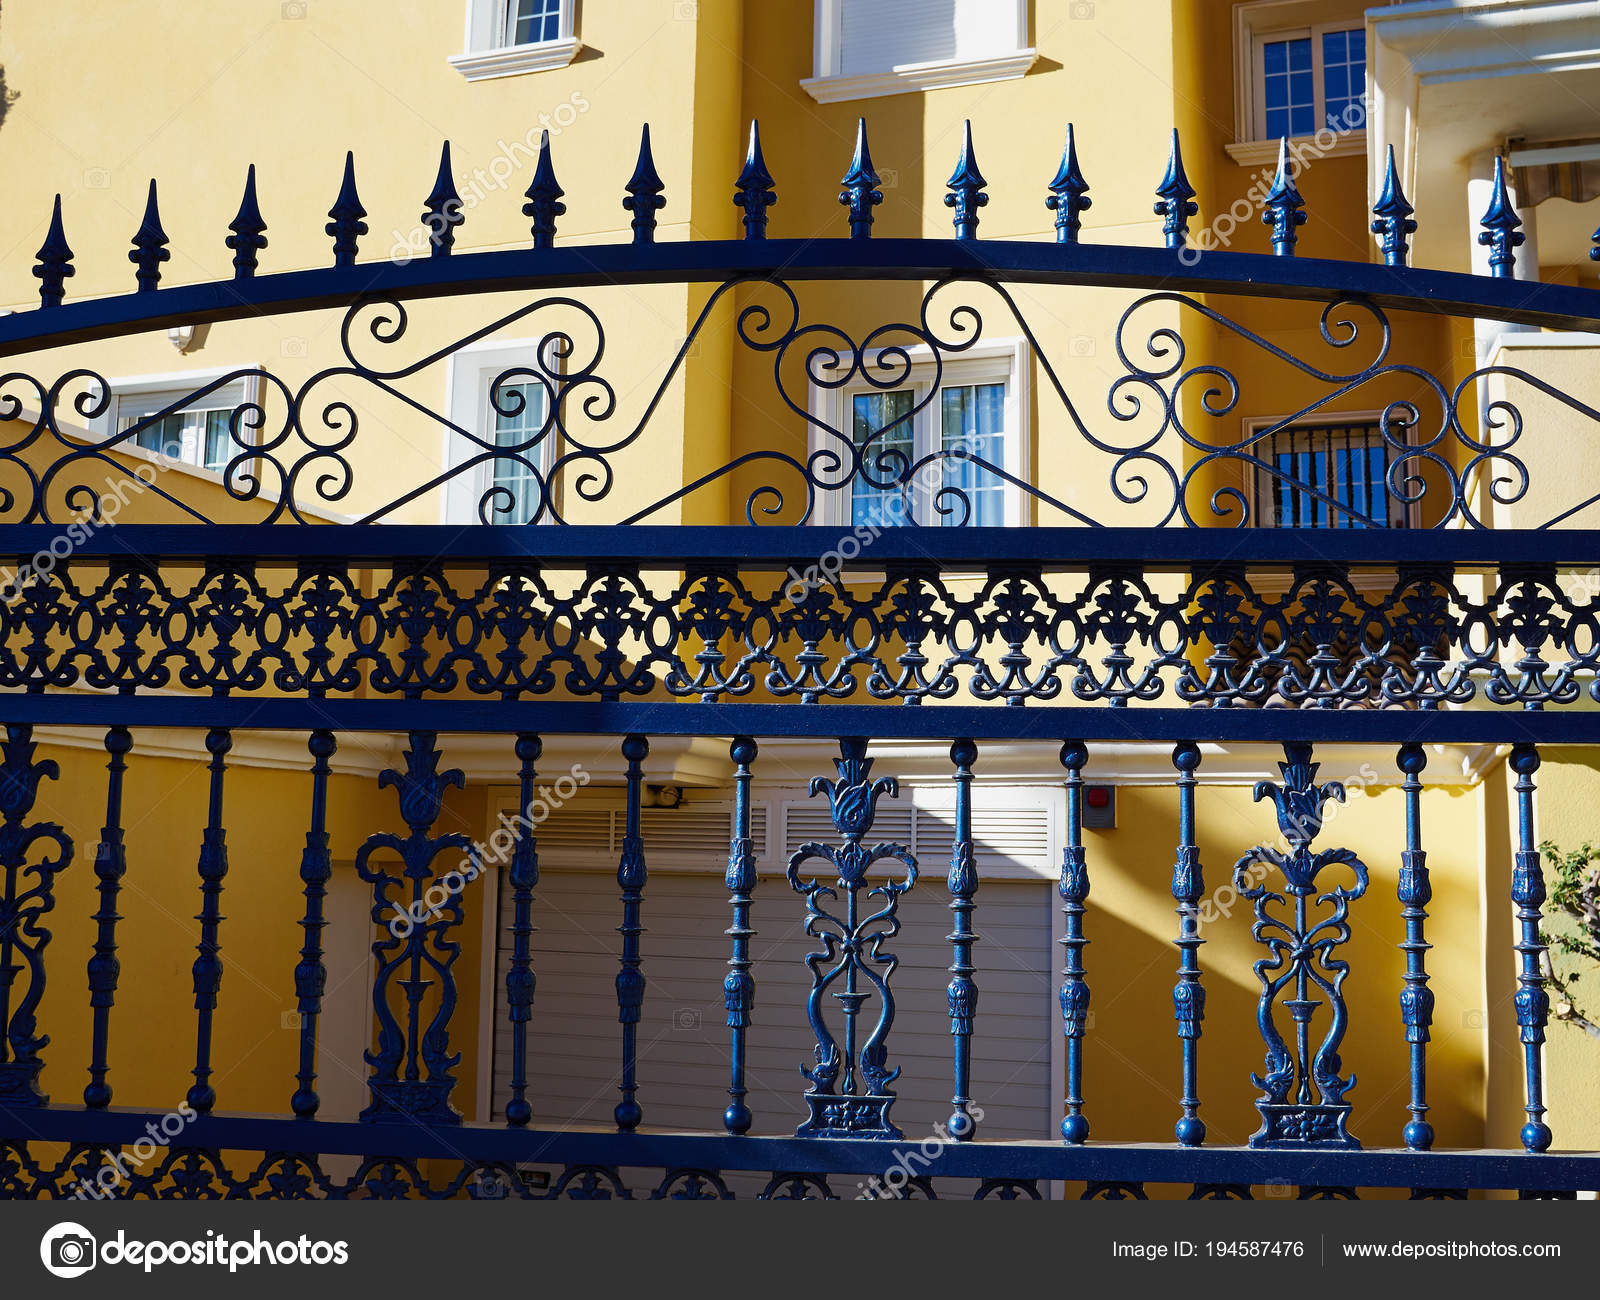 ornate wrought iron gate cheap details of ornate wrought iron elements metal gate spain stock photo